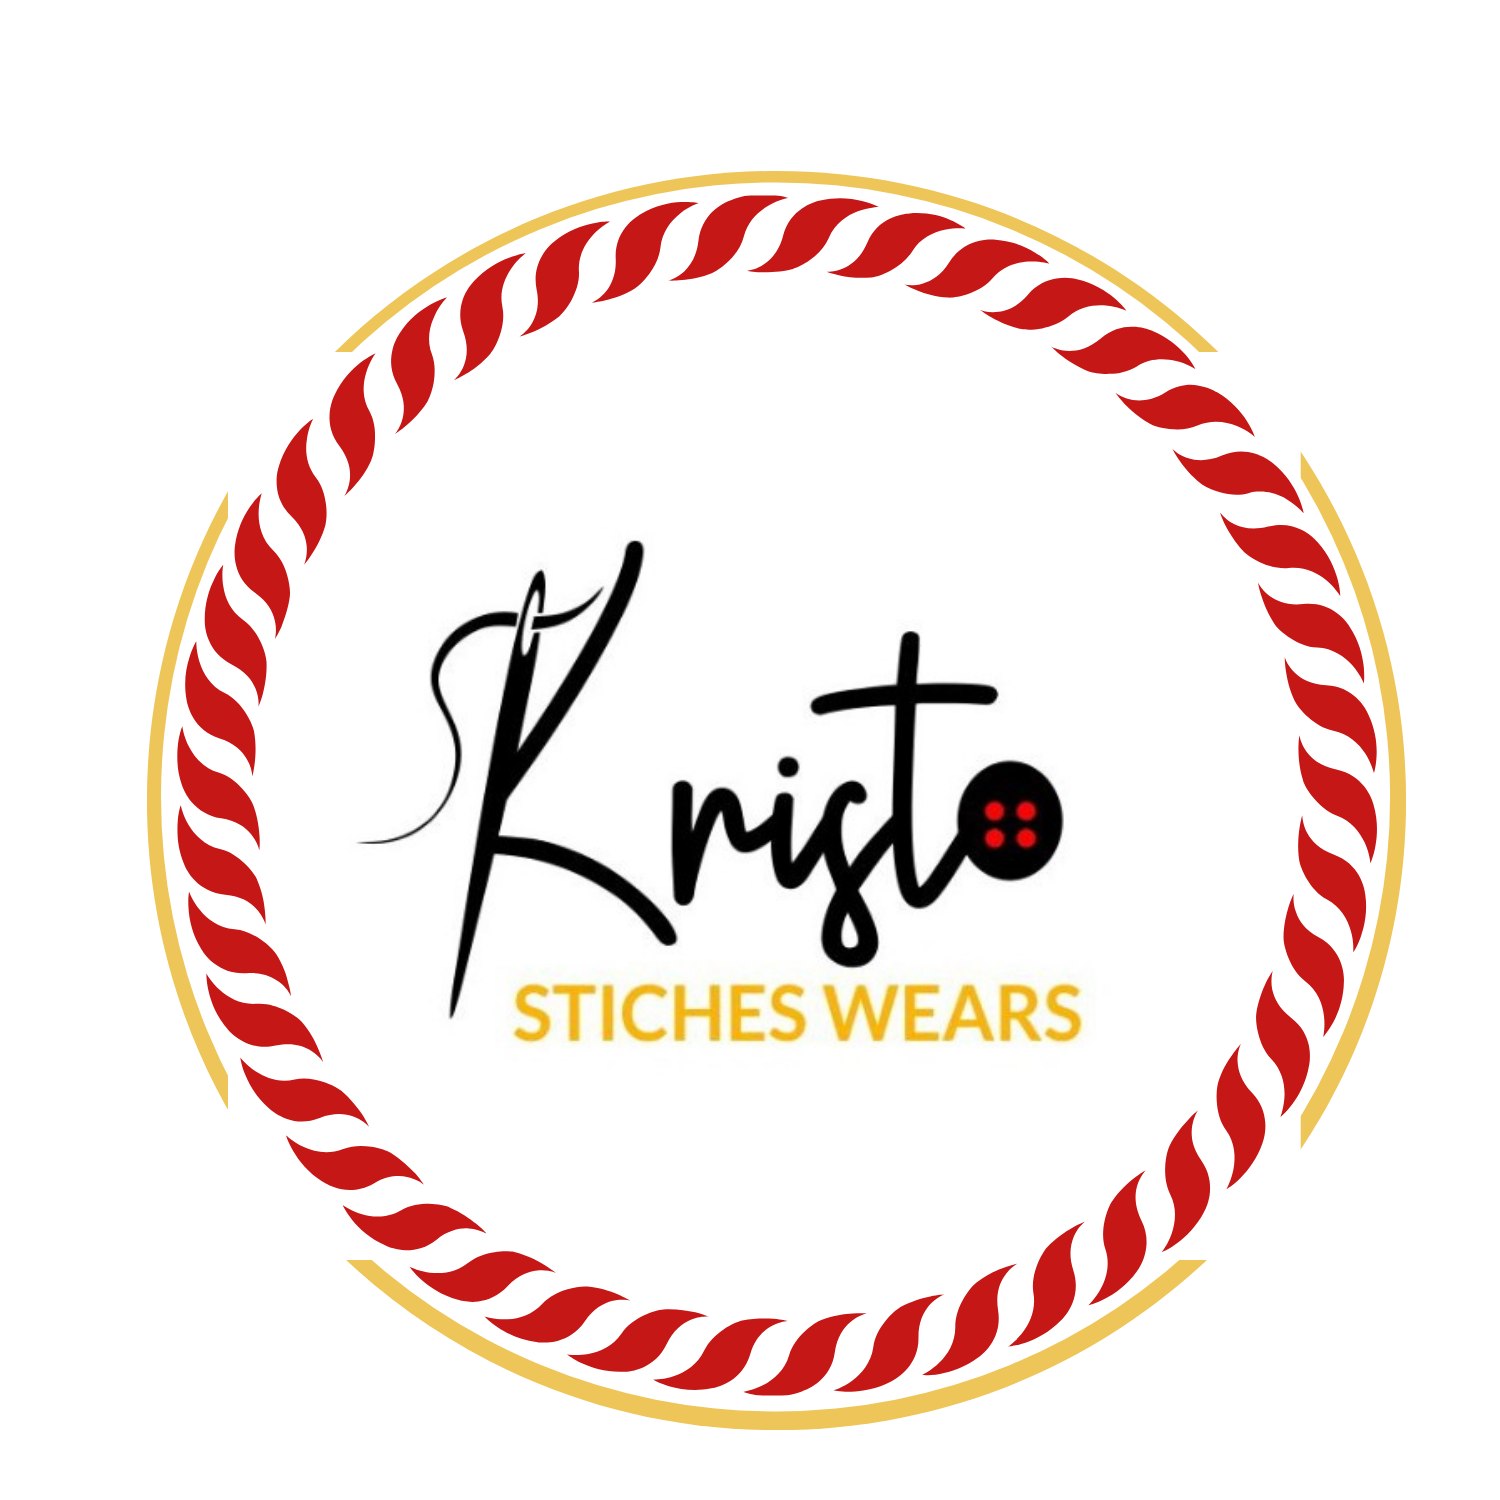 Kristo Stitches Wears